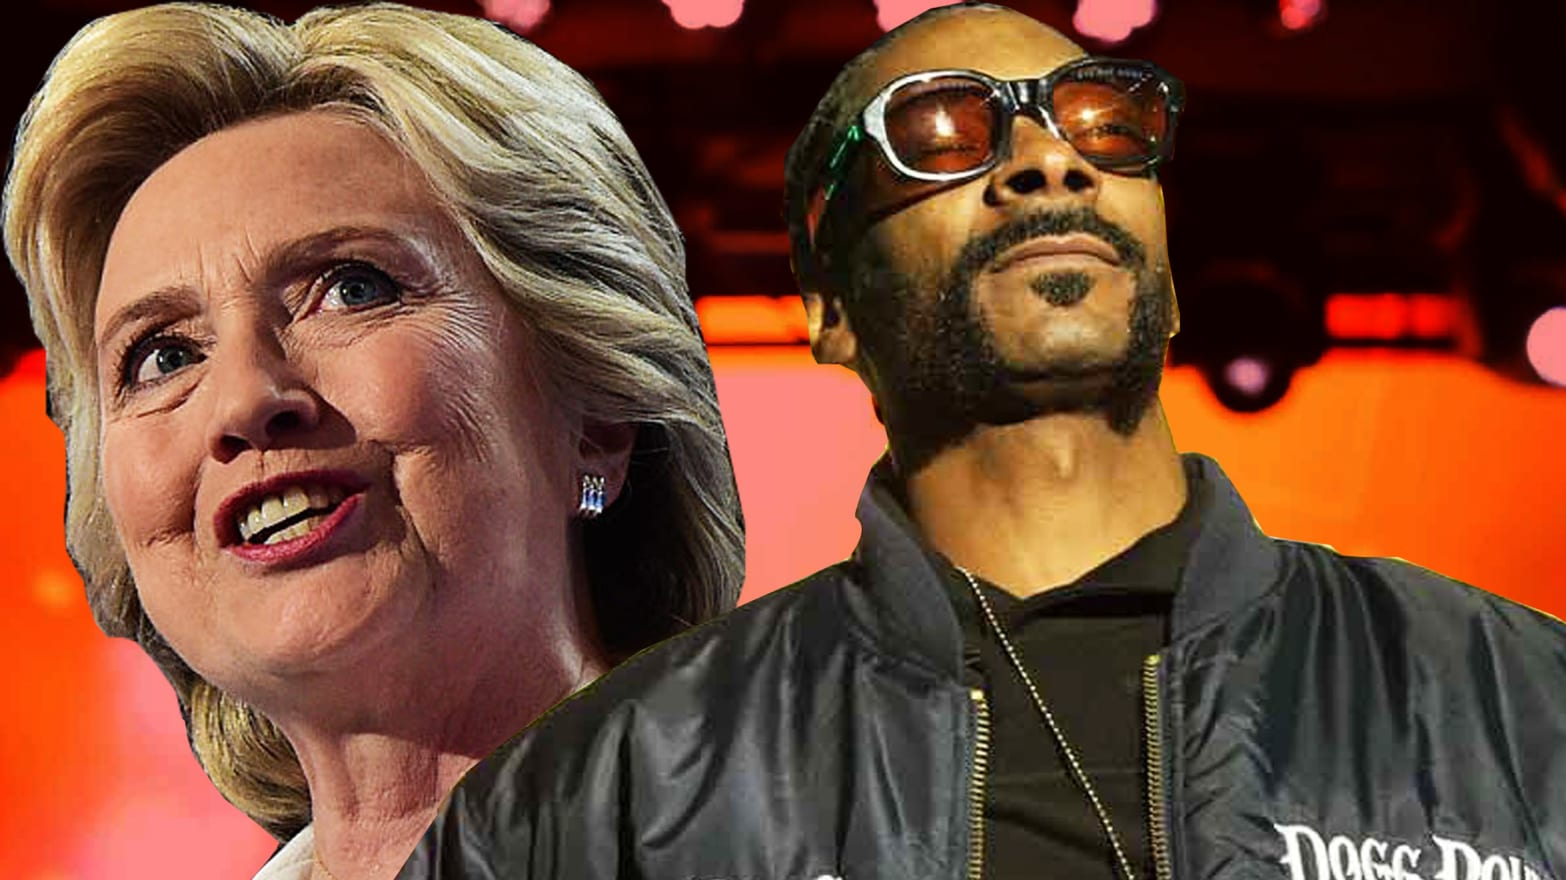 Inside the Snoop Dogg Super PAC Party at DNC 2016: 'F*** Donald Trump,' ' Hillary, You're My Favorite Girl'